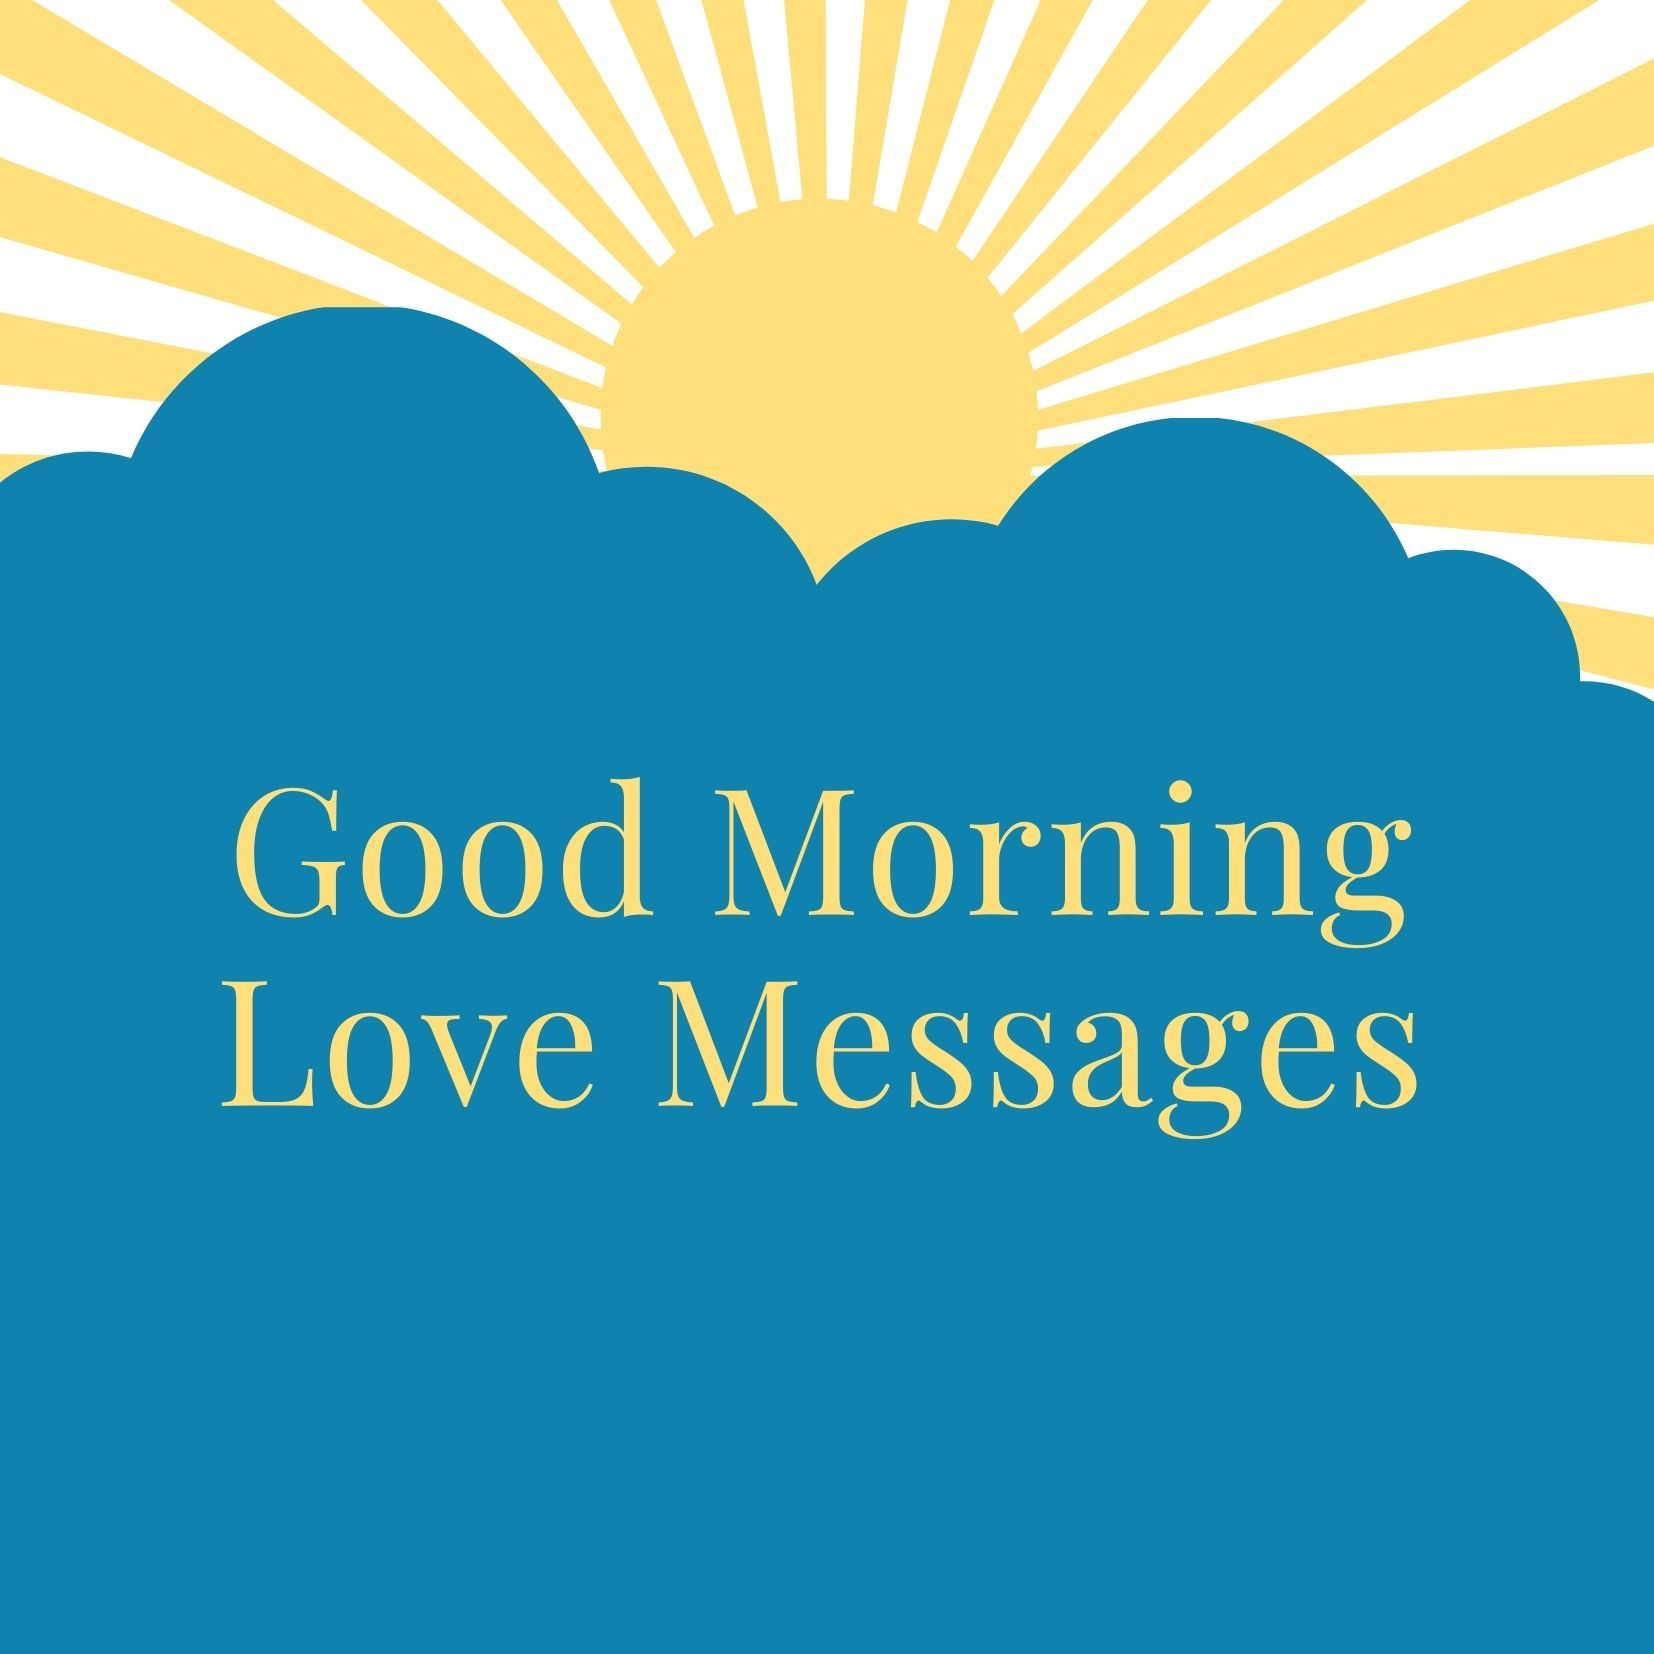 Good morning Love messages image free